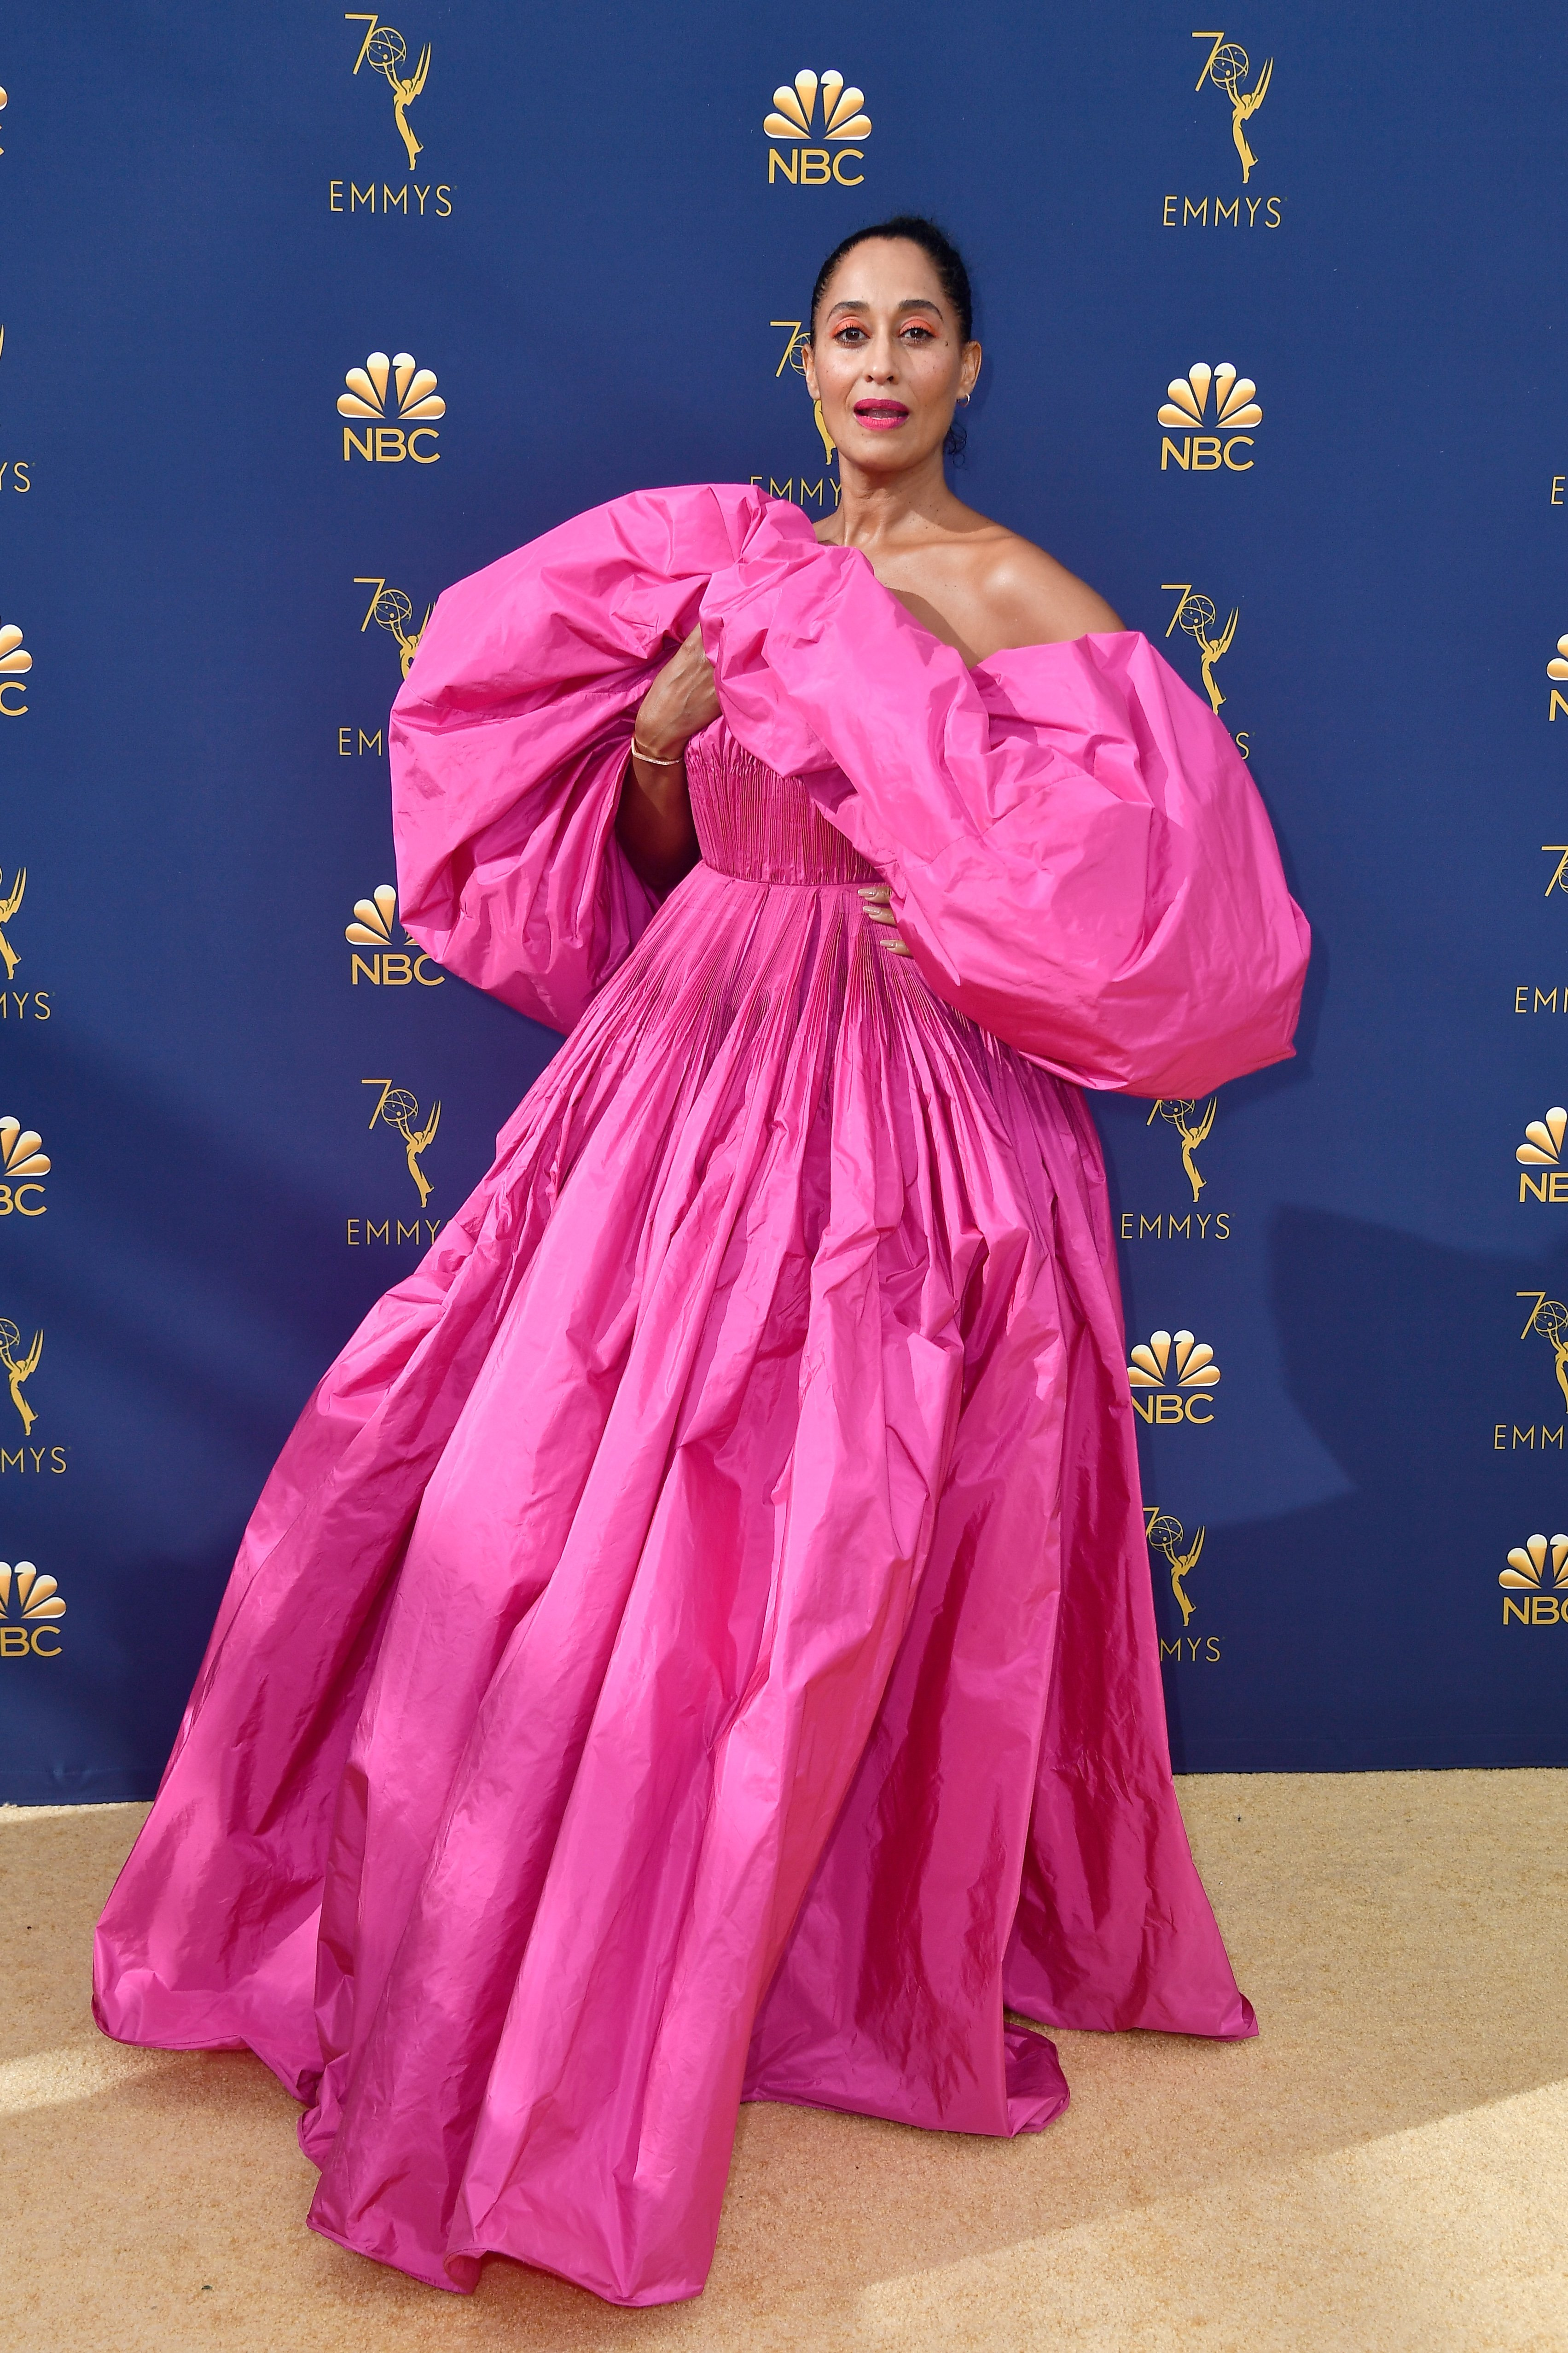 Tracee Ellis Ross at the 70th Emmy Awards at Microsoft Theater on September 17, 2018 in Los Angeles, California.| Source: Getty Images